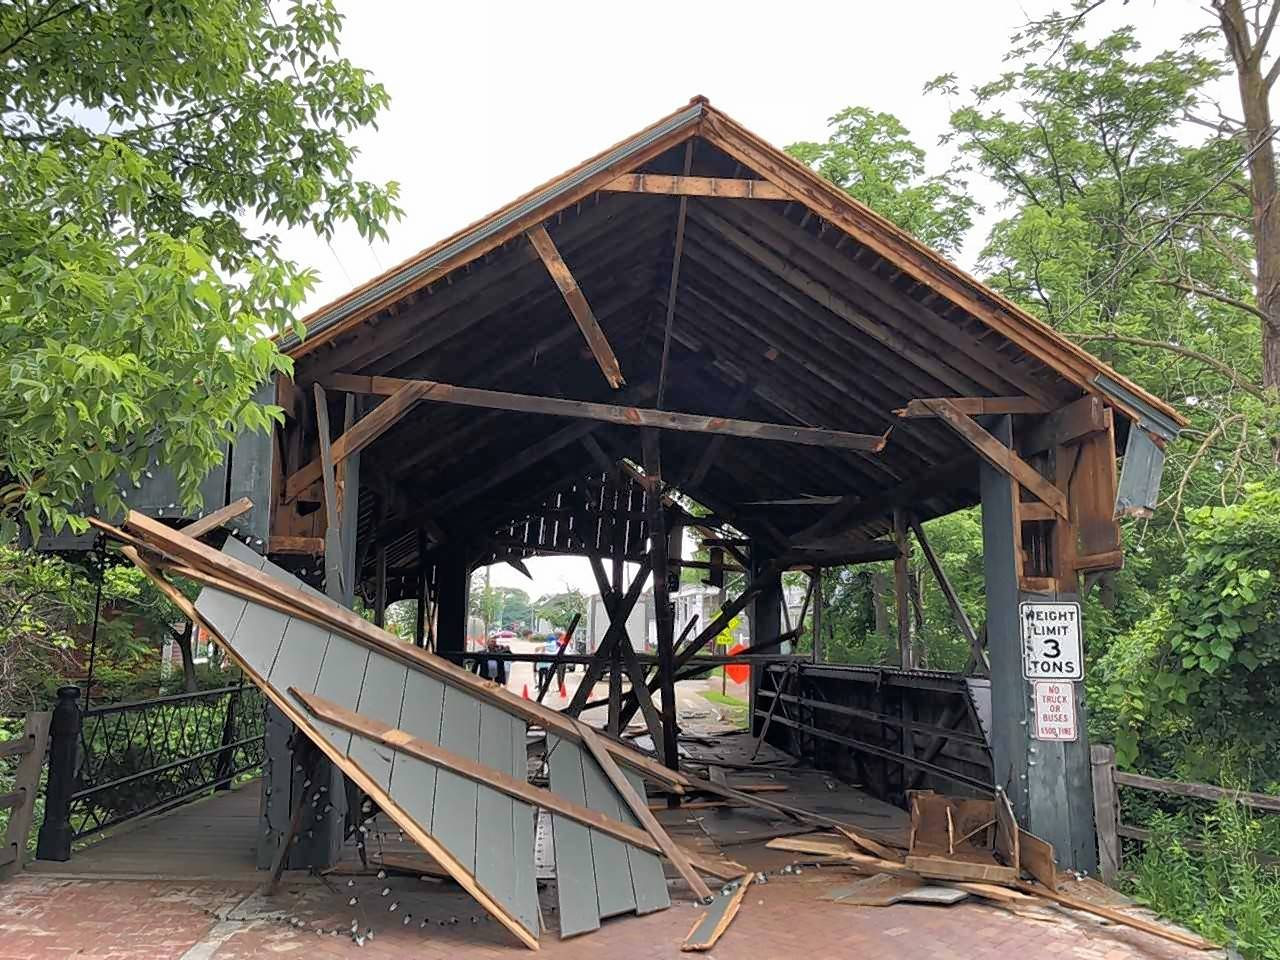 Truck damages historic Long Grove bridge